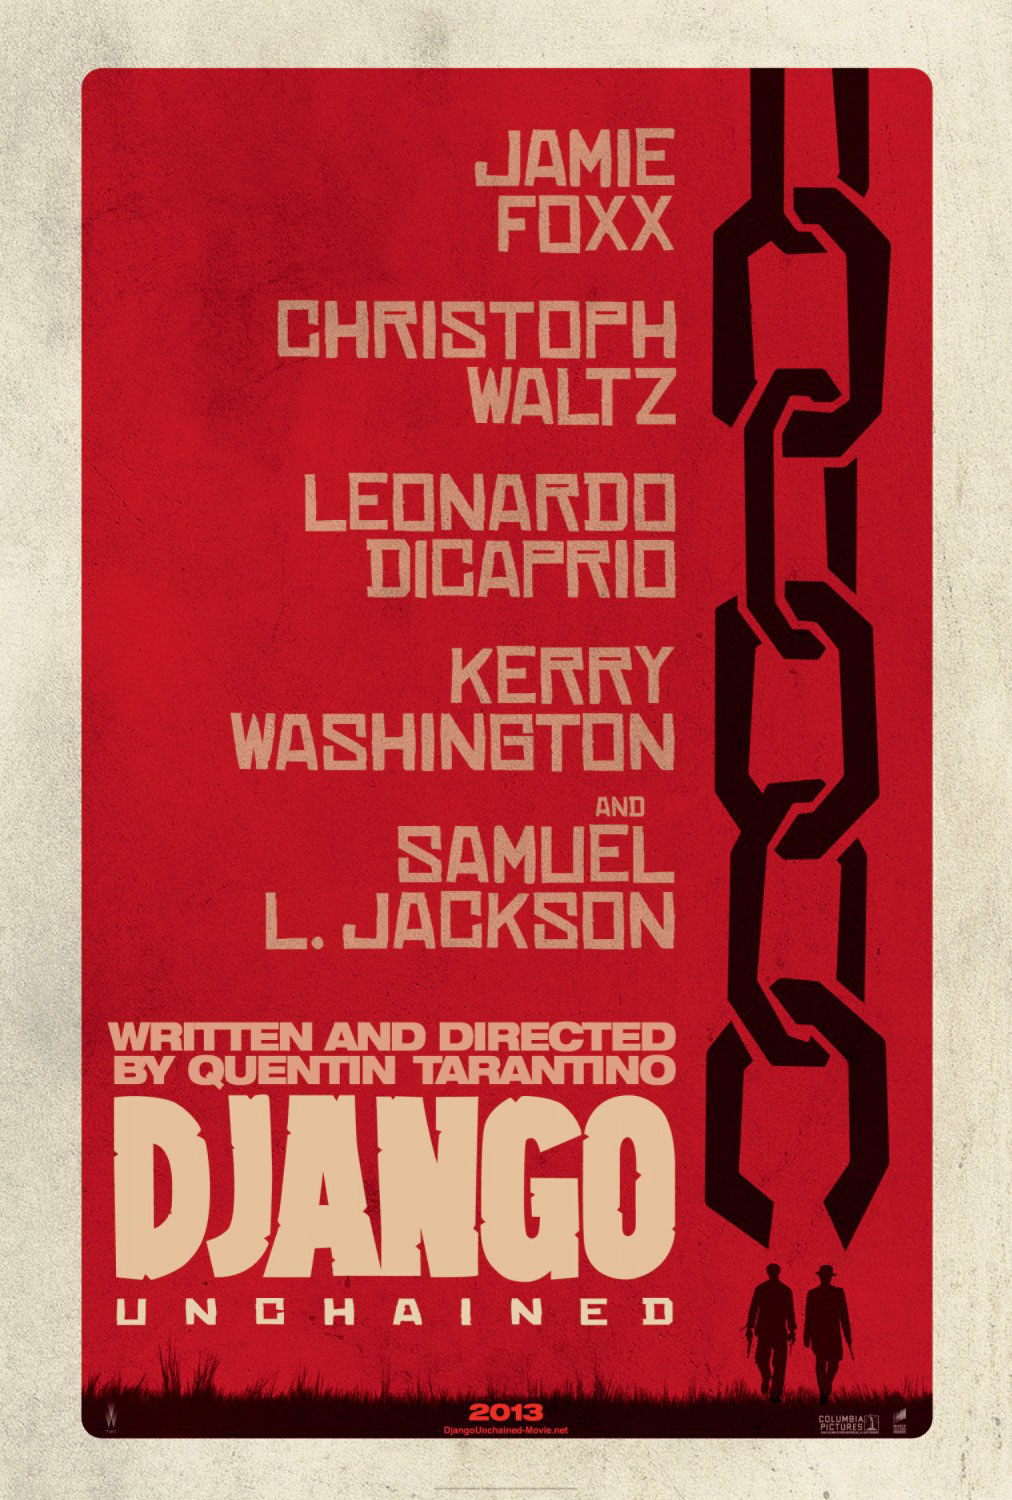 http://cinemateaser.com/wordpress/wp-content/uploads/2012/08/DJANGO-UNCHAINED-POSTER-2-XL.jpg